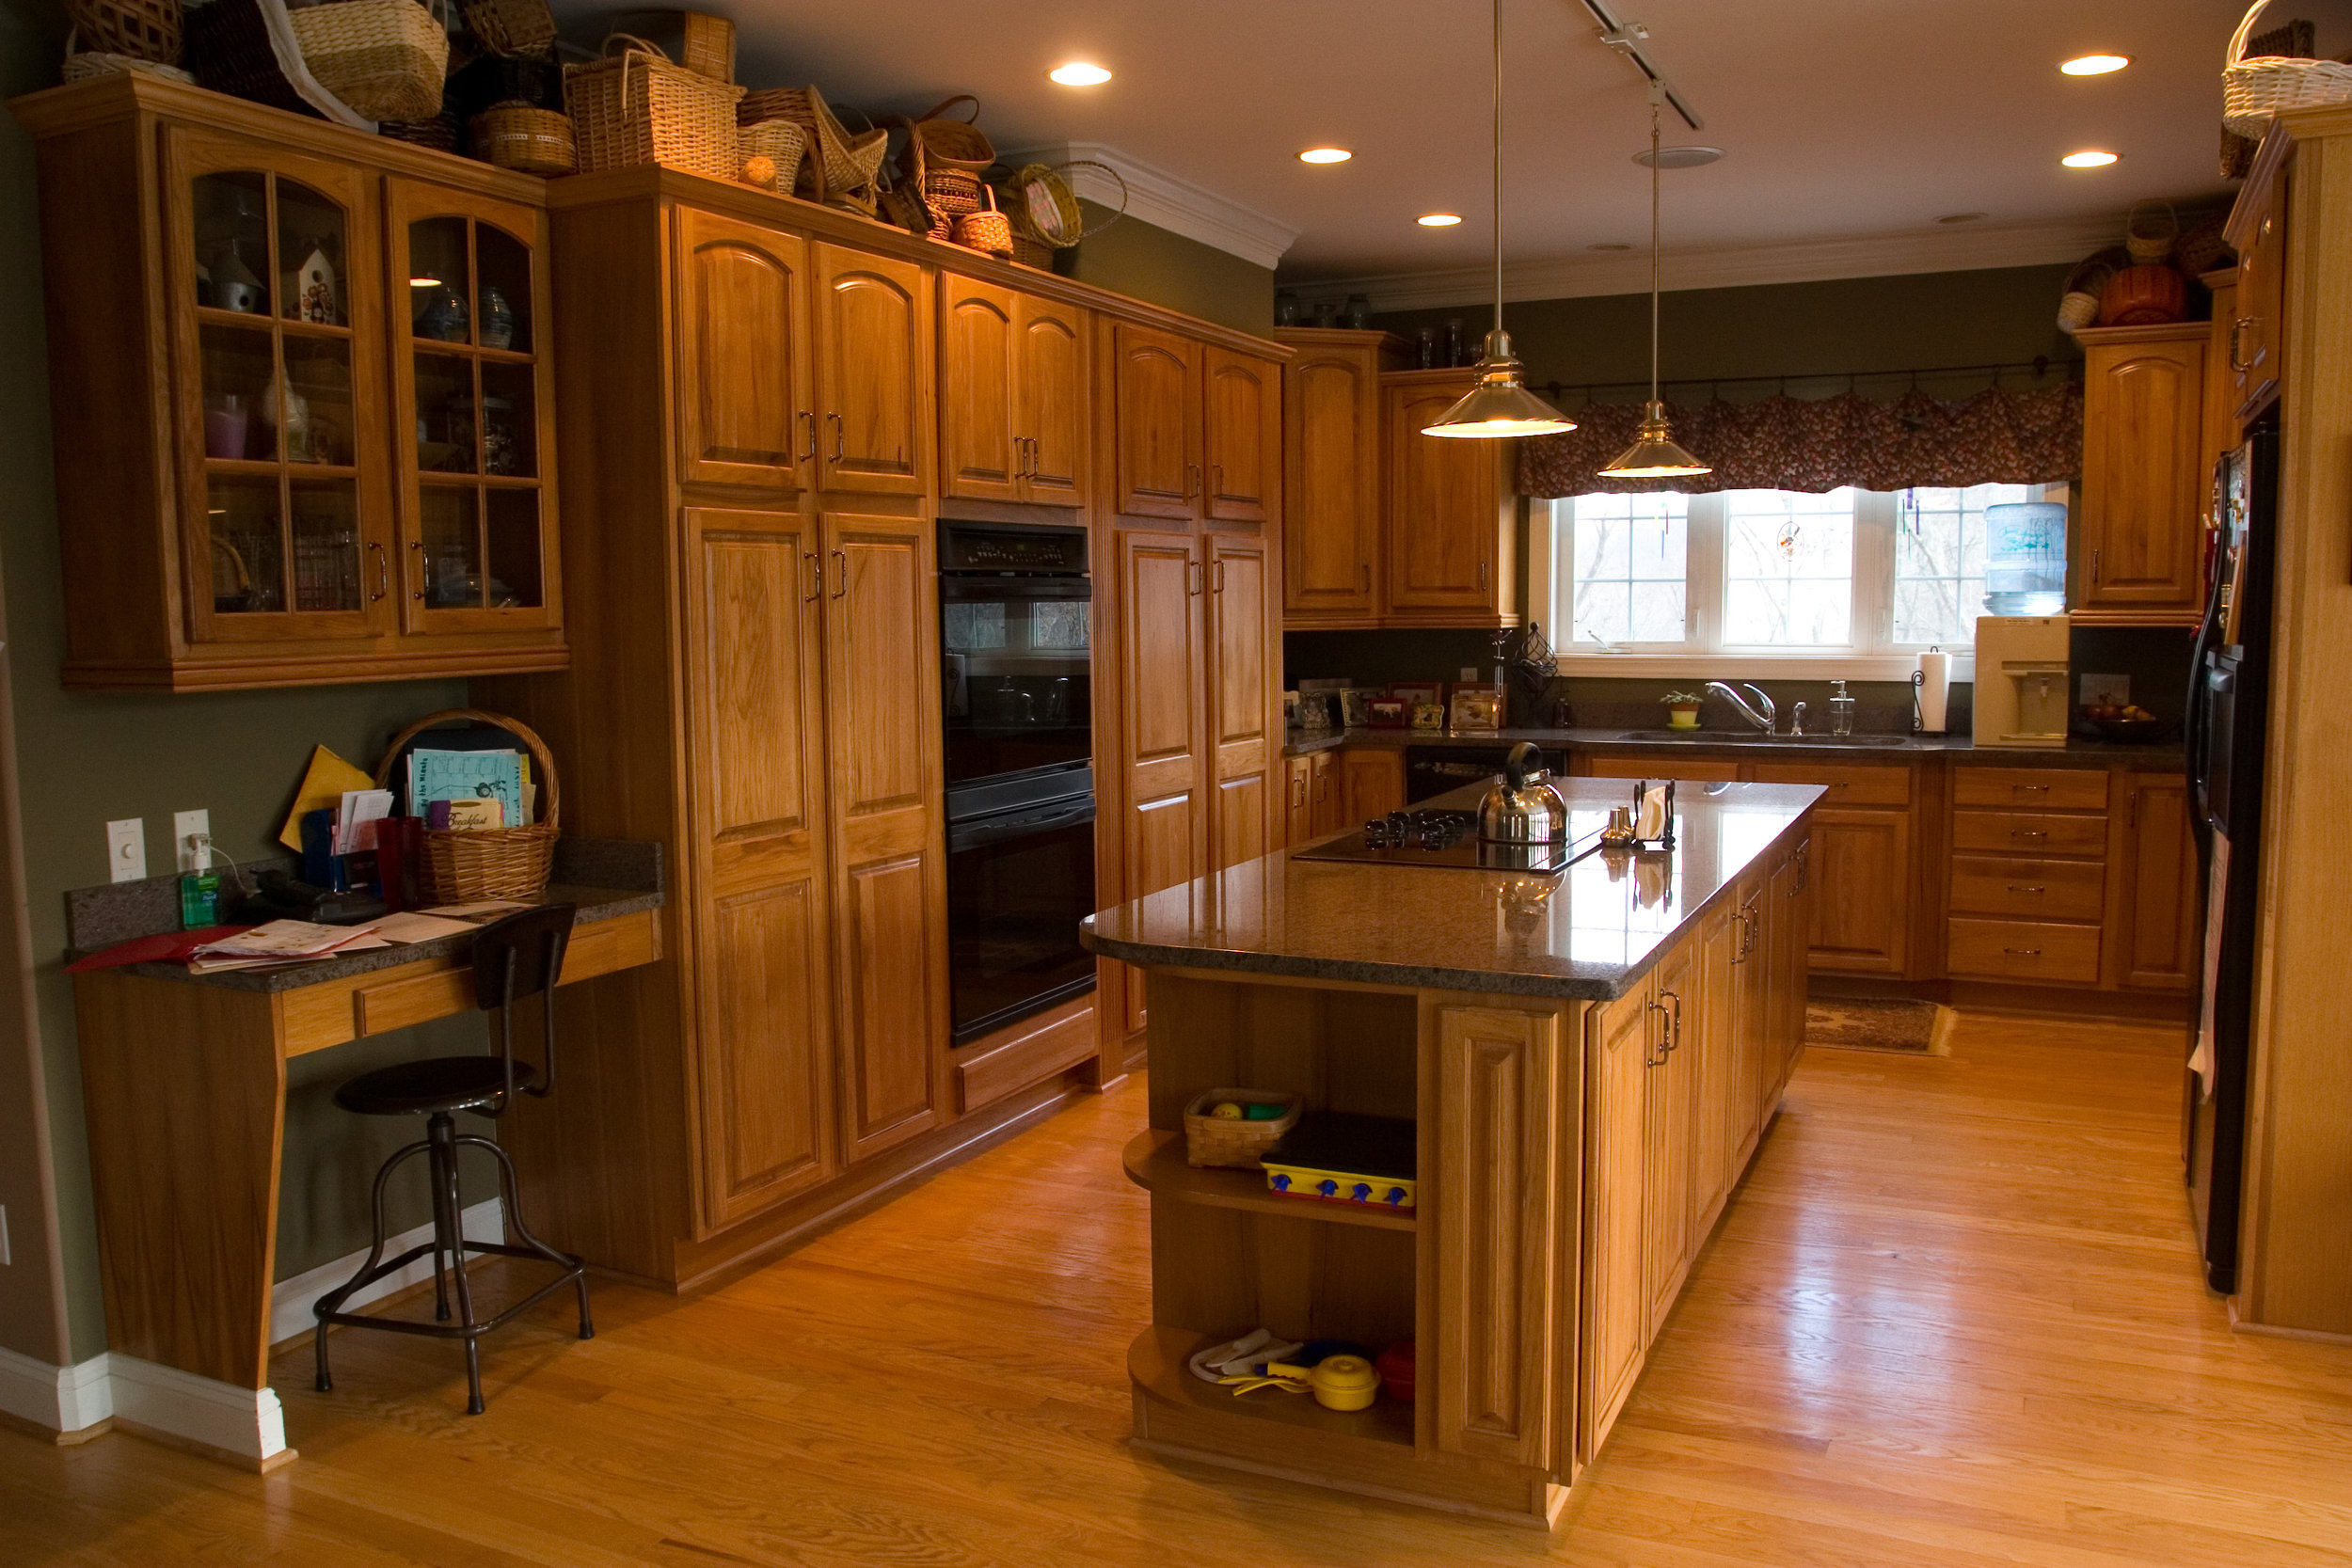 scotts_kitchen1.jpg